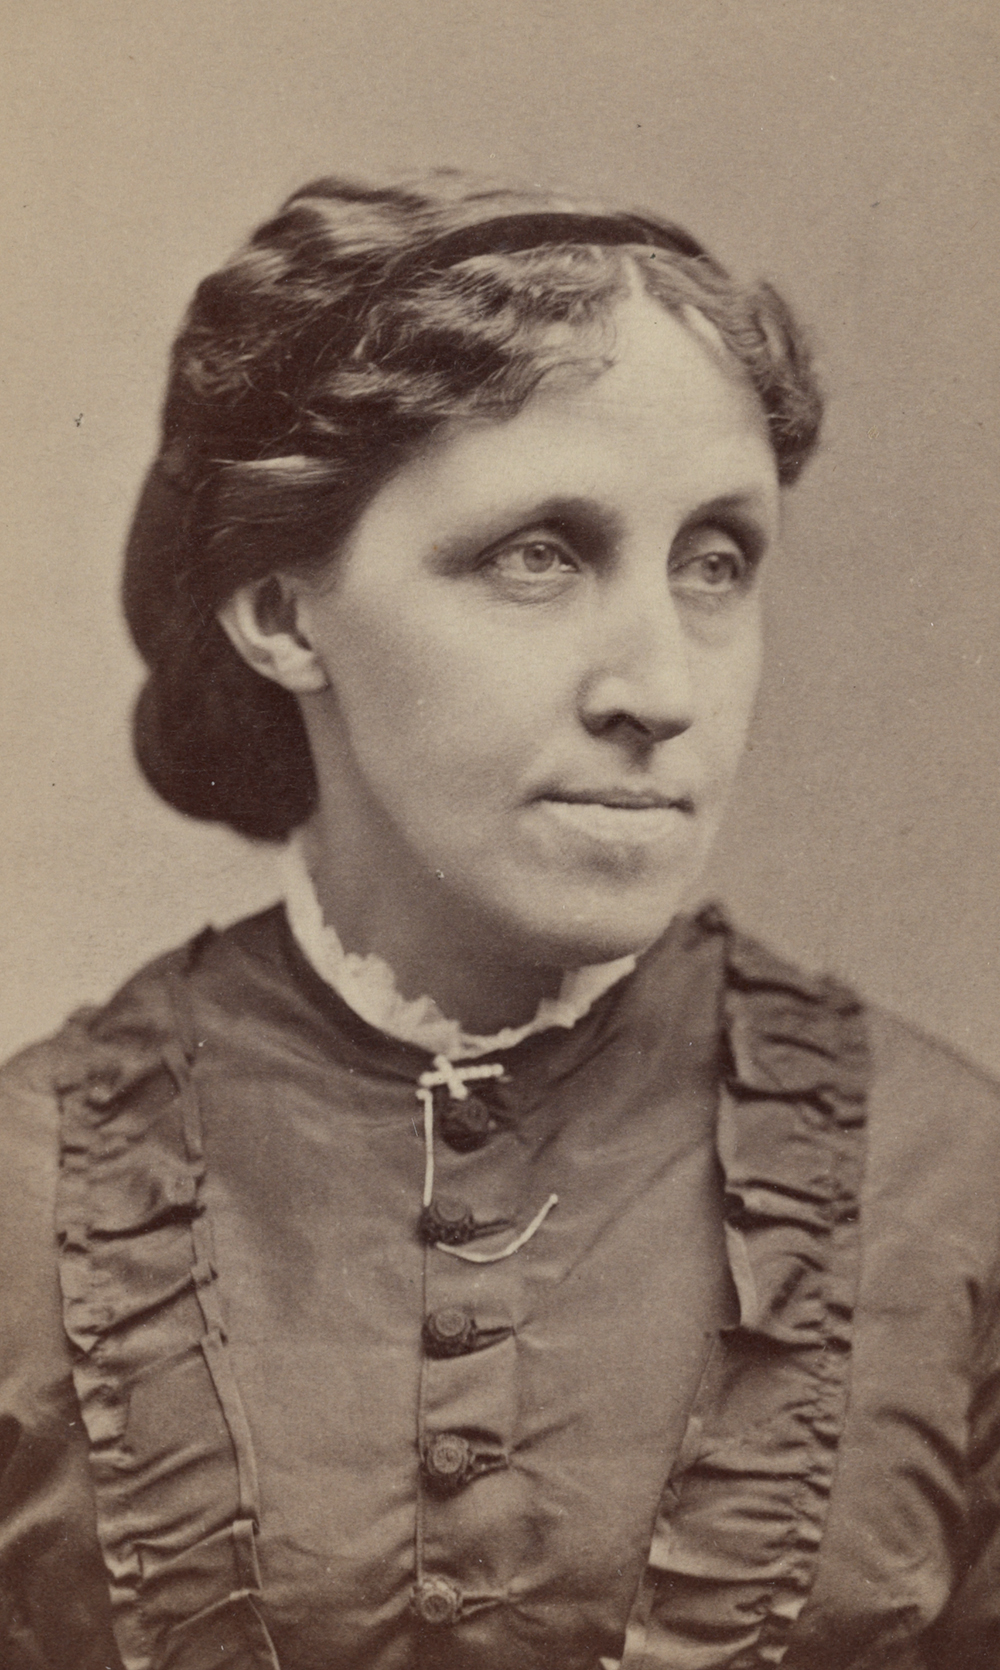 Louisa May Alcott, 1870. Photograph by G.K. Kendall. Library of Congress, Prints and Photographs Division.